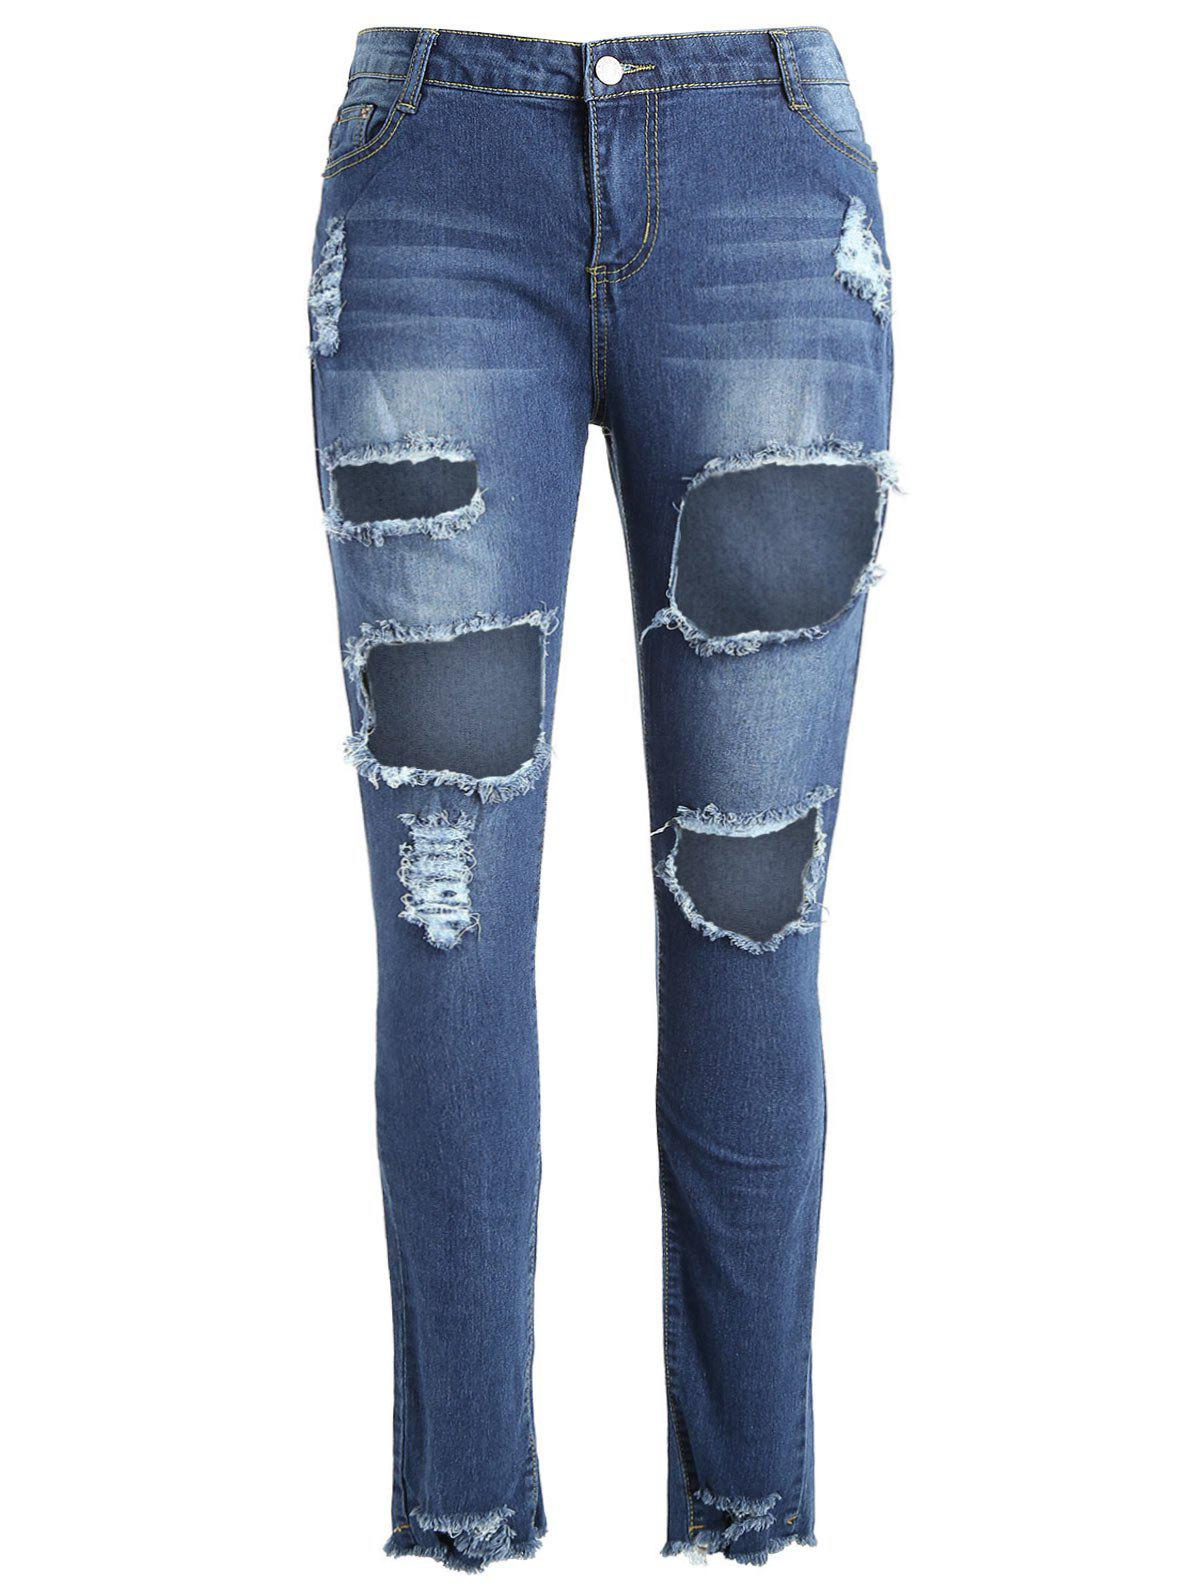 New Fishnet Panel Plus Size Torn Jeans